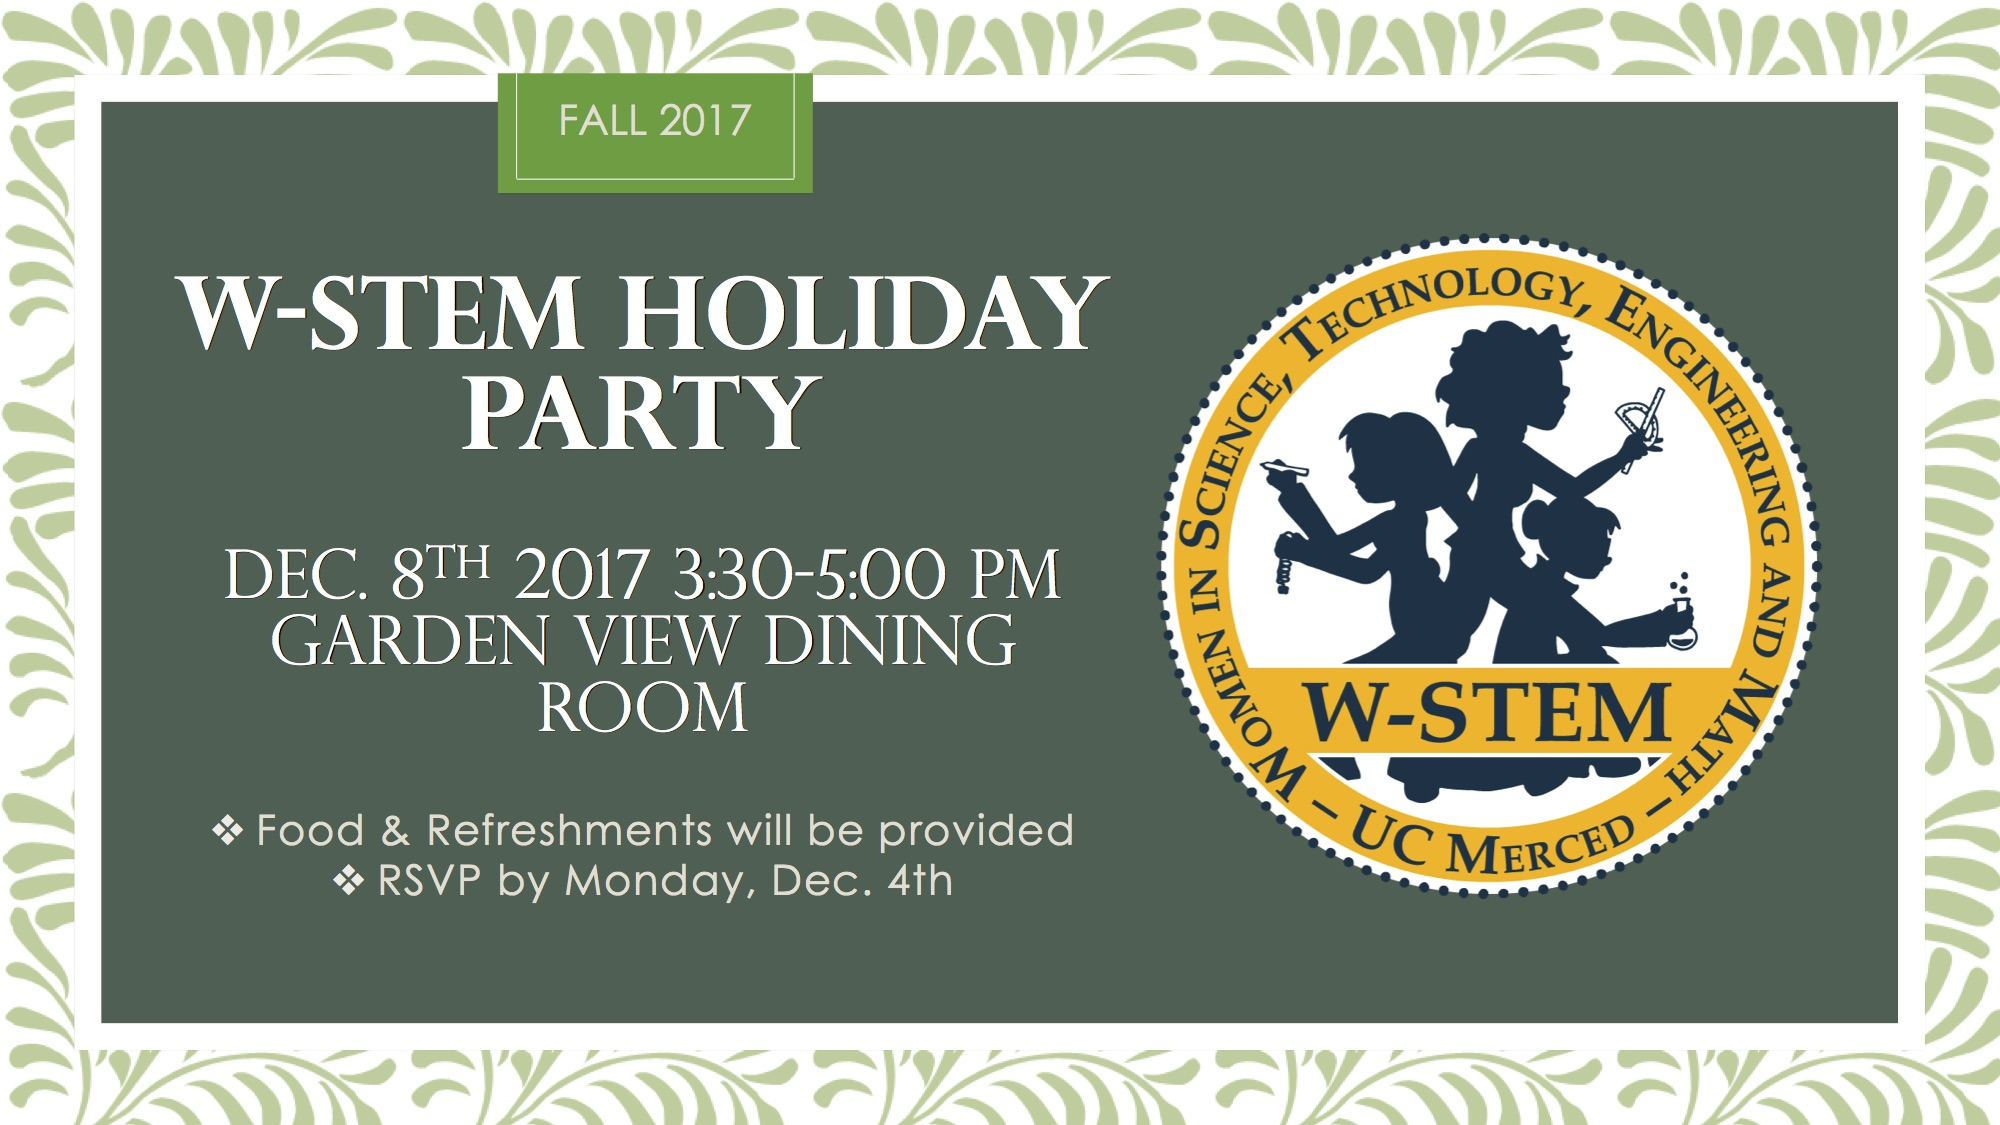 W-STEM Holiday Party